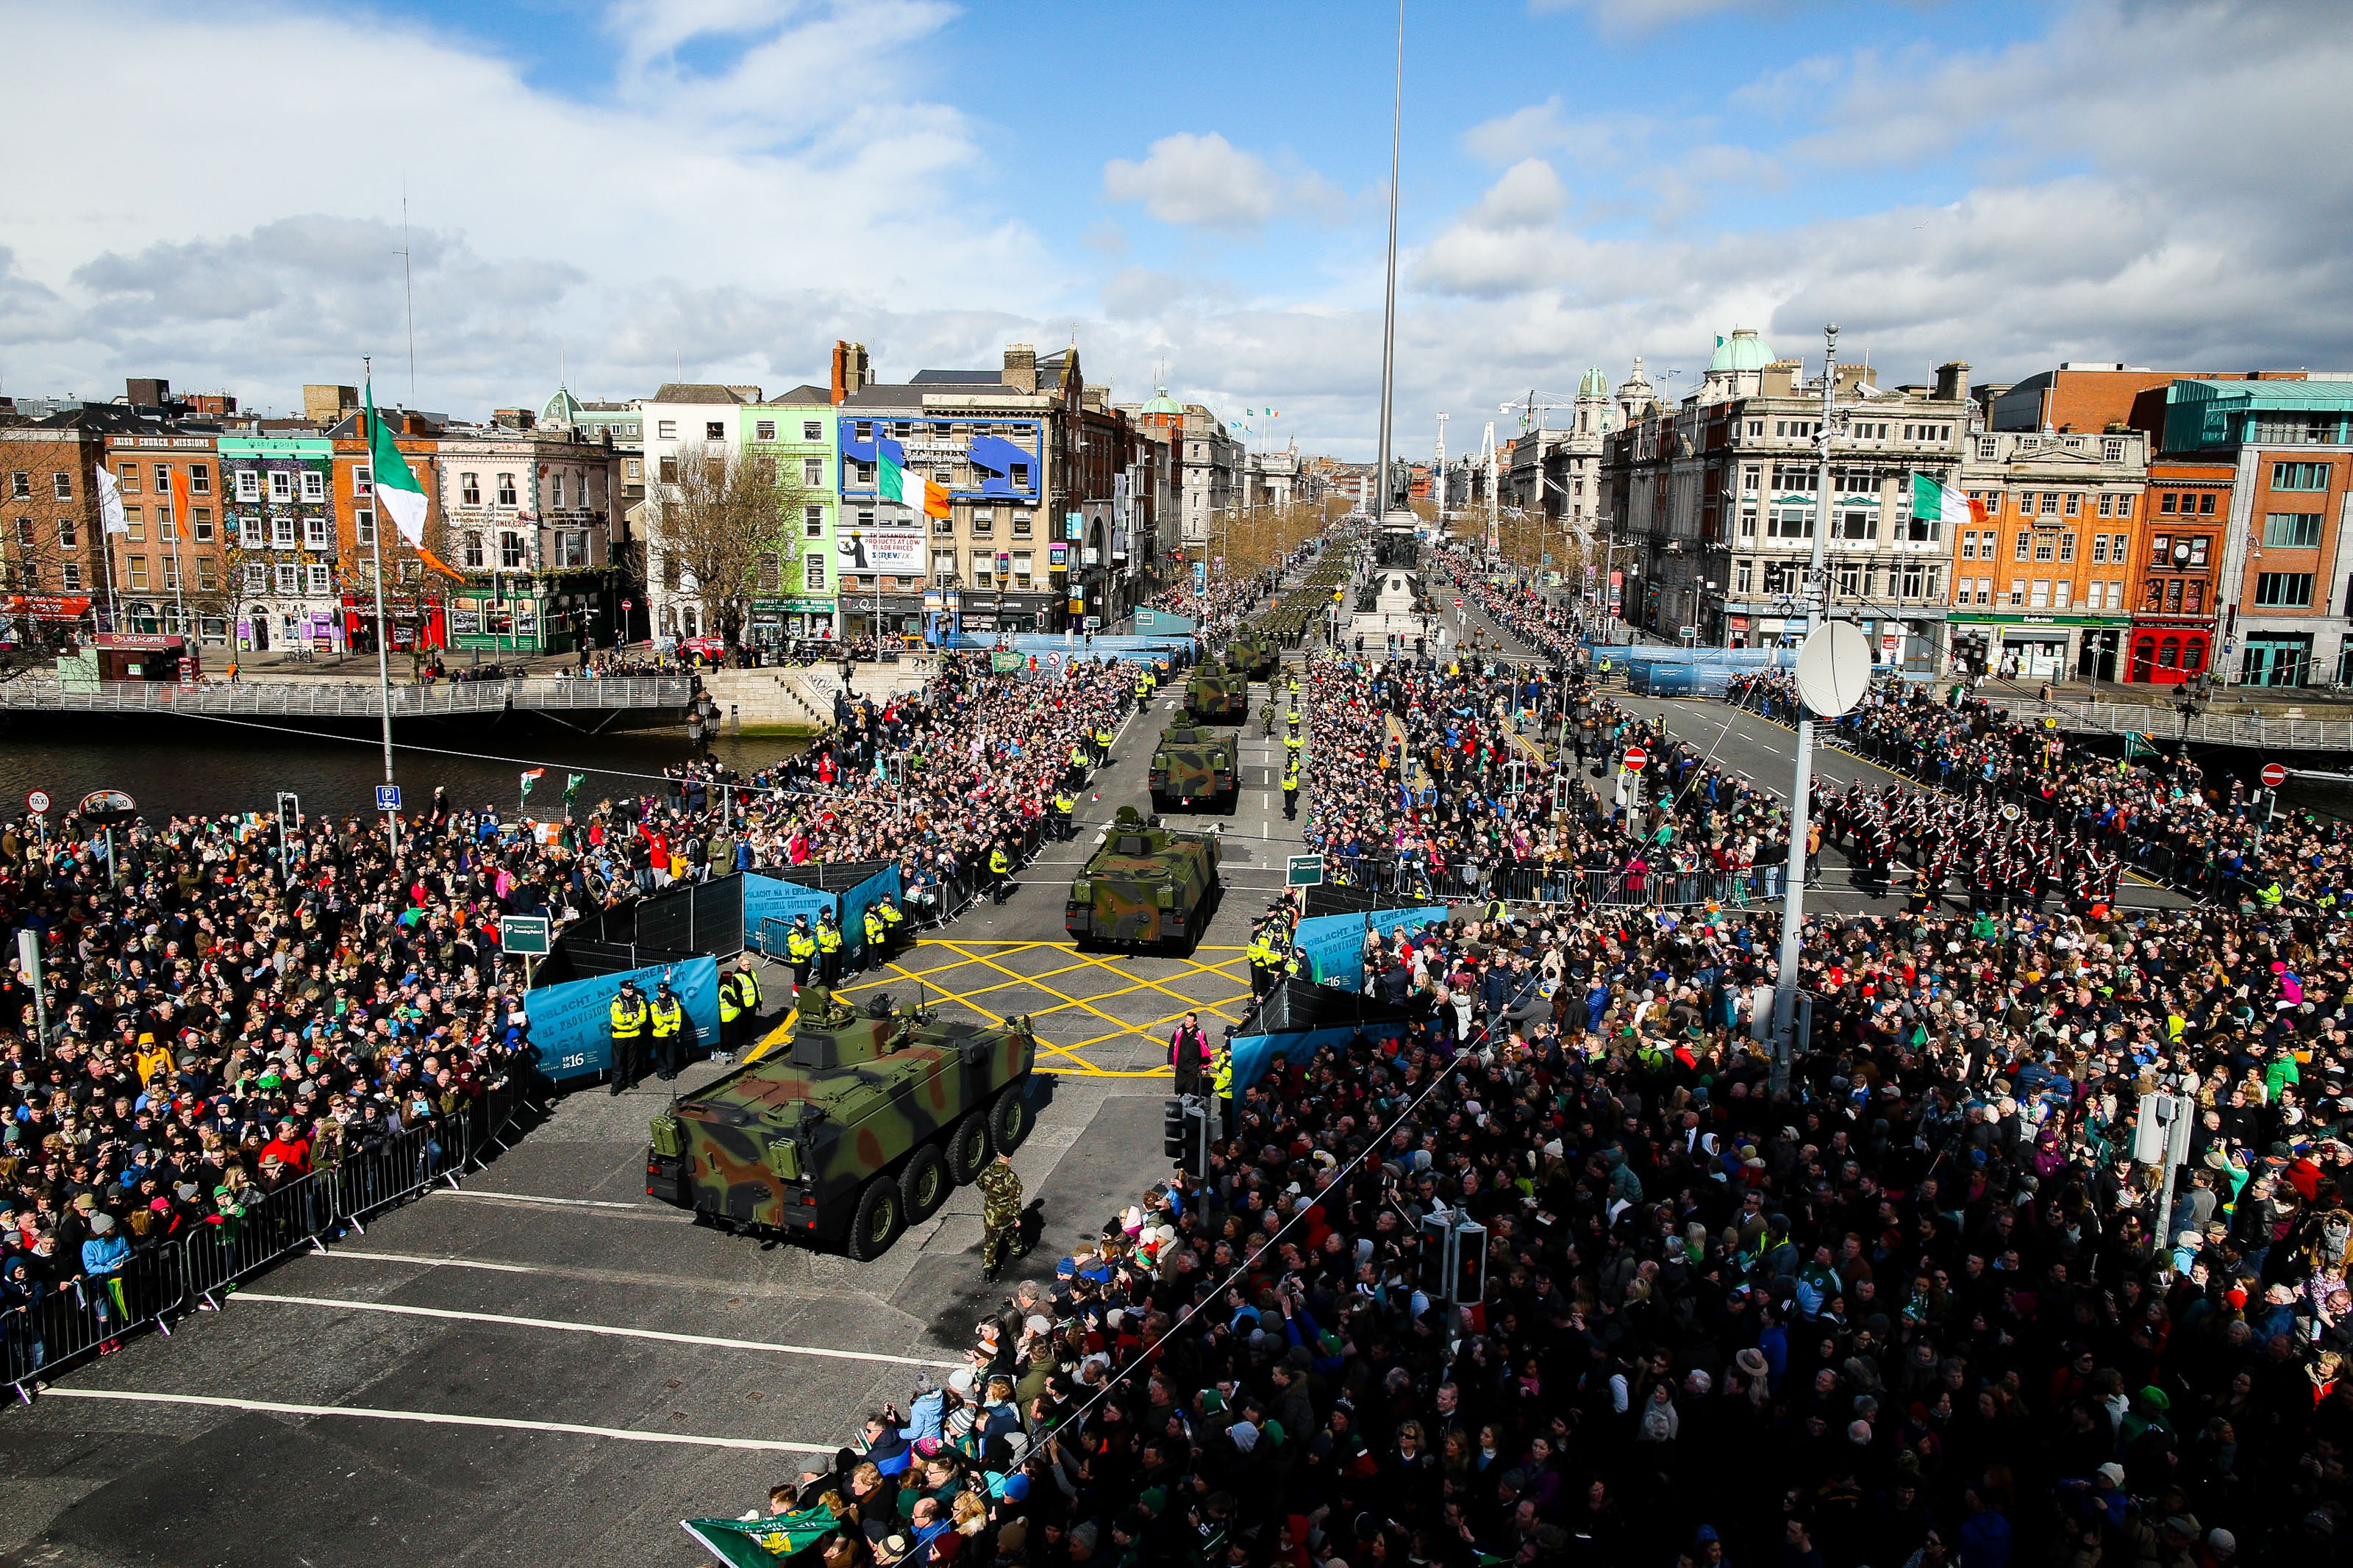 A general view of the parade commemorating the 100th anniversary of the Easter Rising in the Republic of Ireland, when in 1916 a rebellion was attempted to oust British rule of the country.